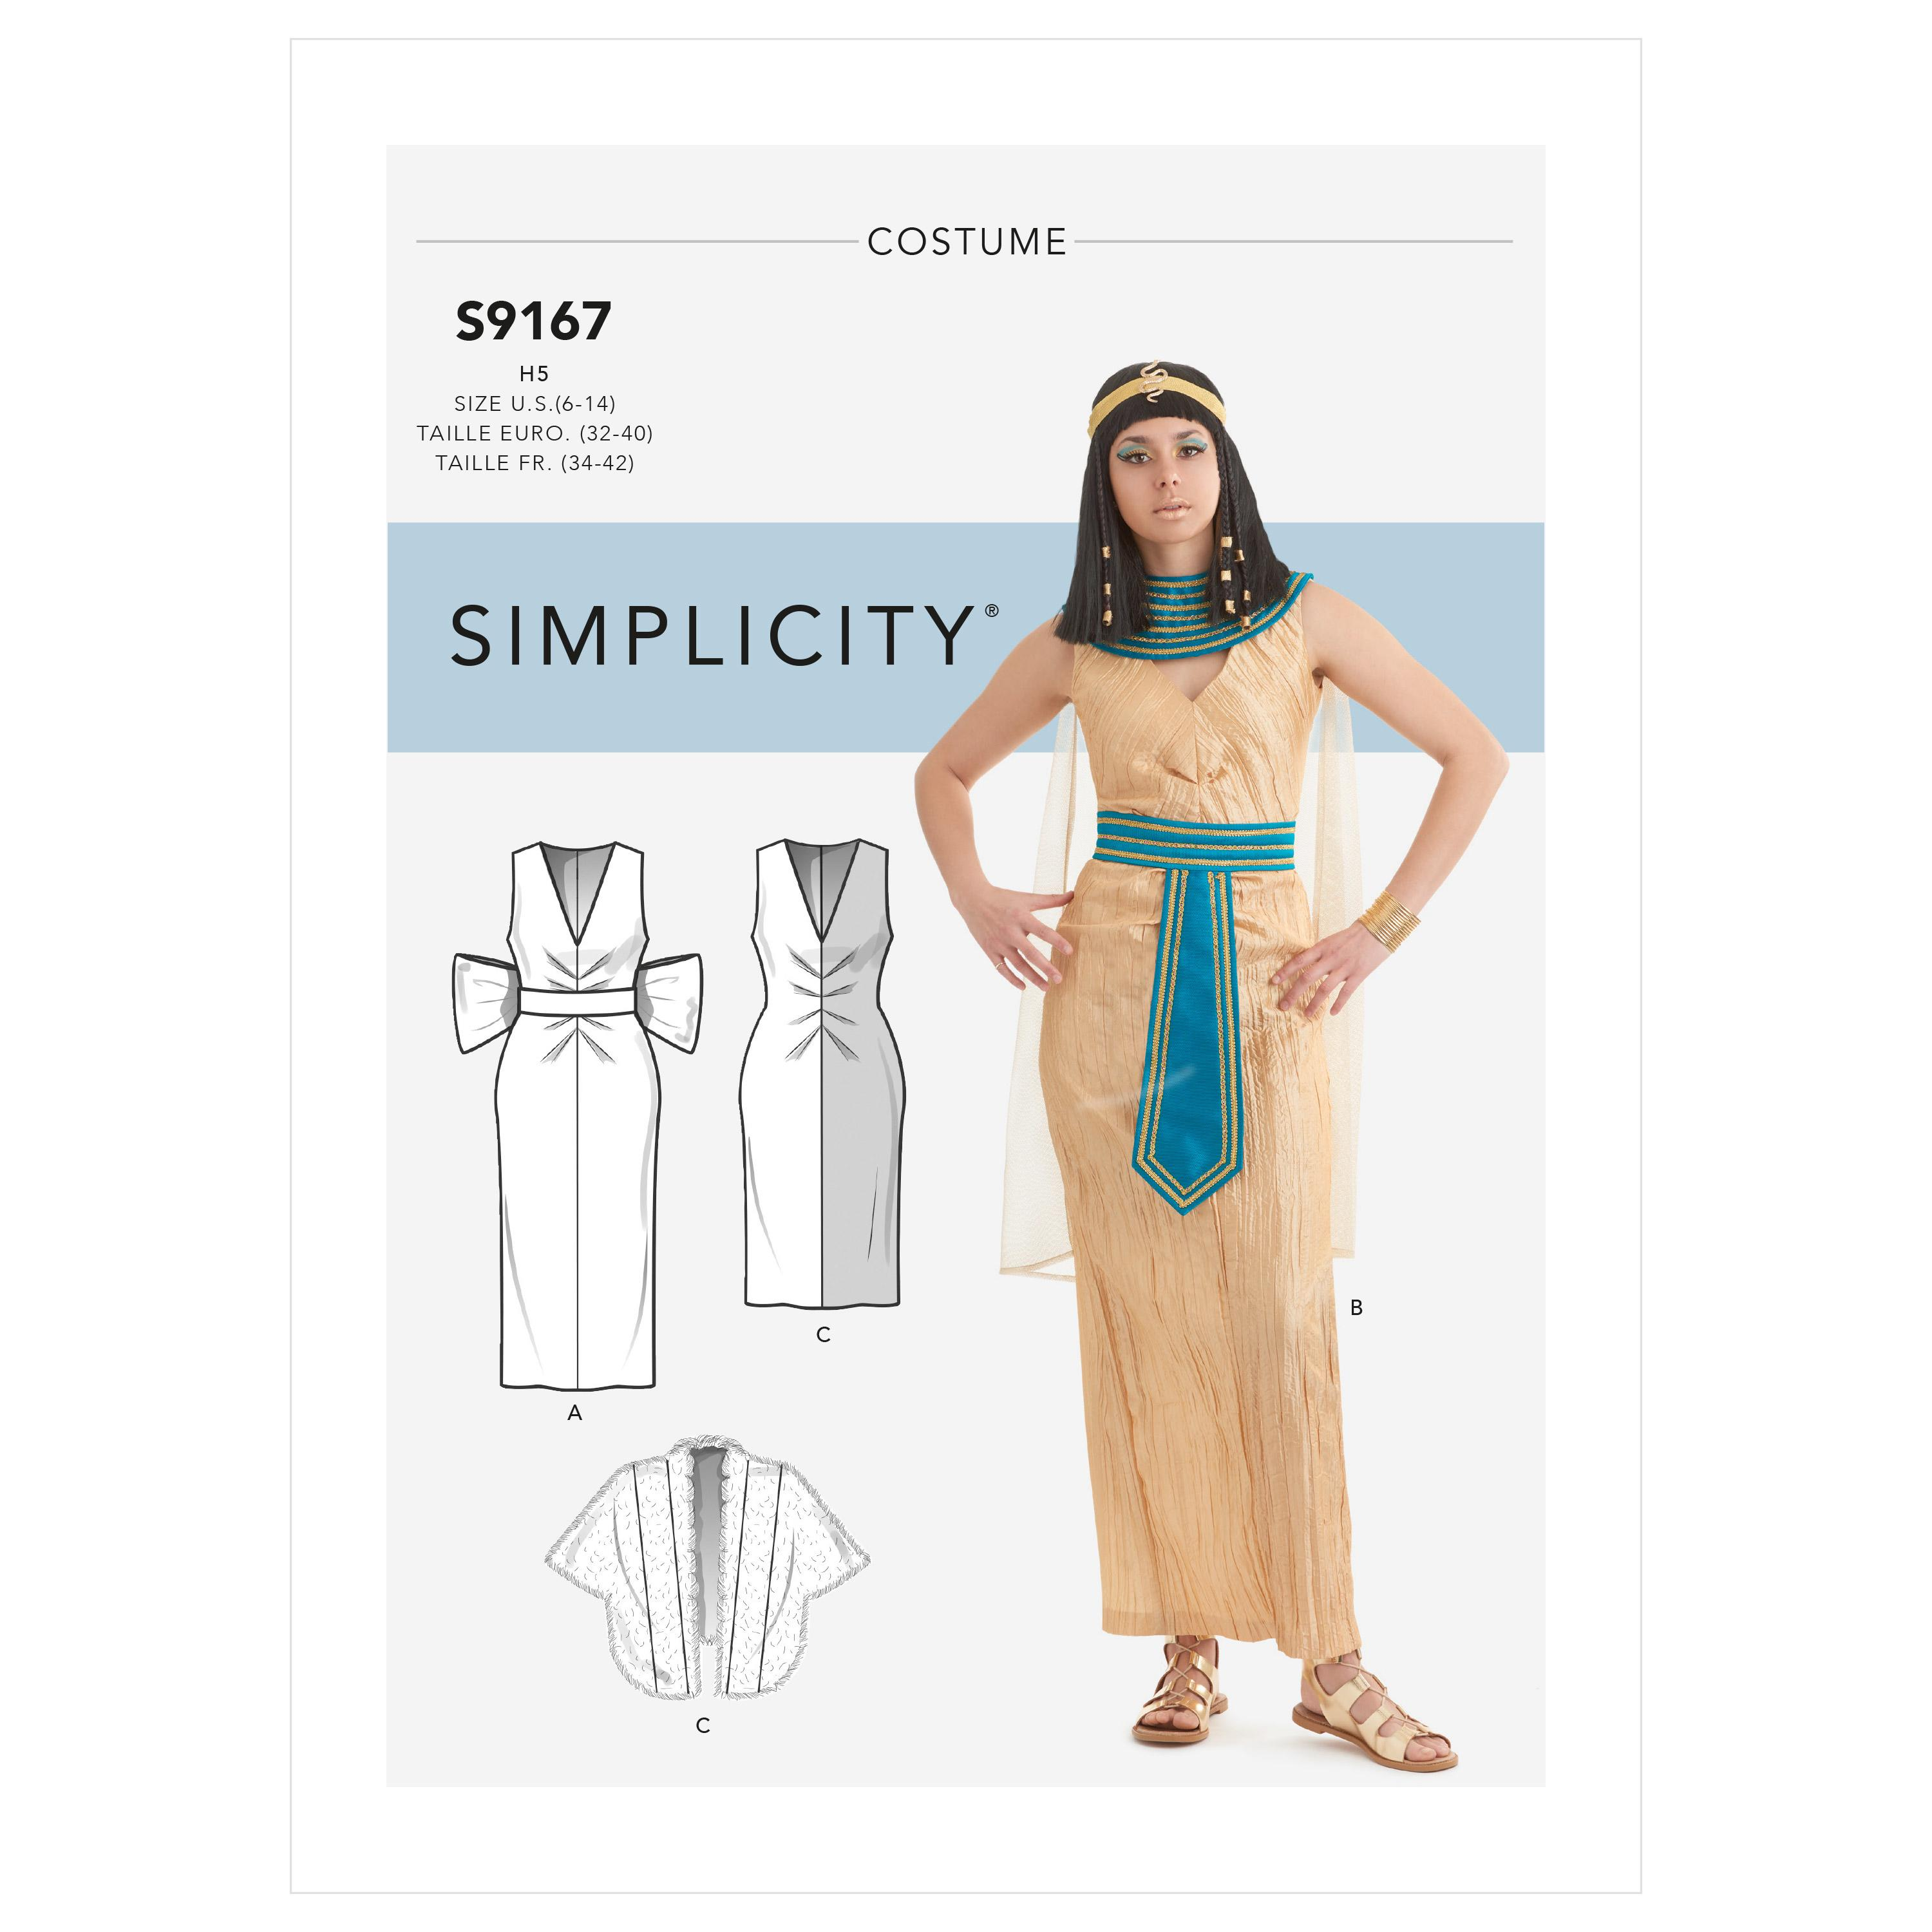 Simplicity S9167 Misses' Costumes